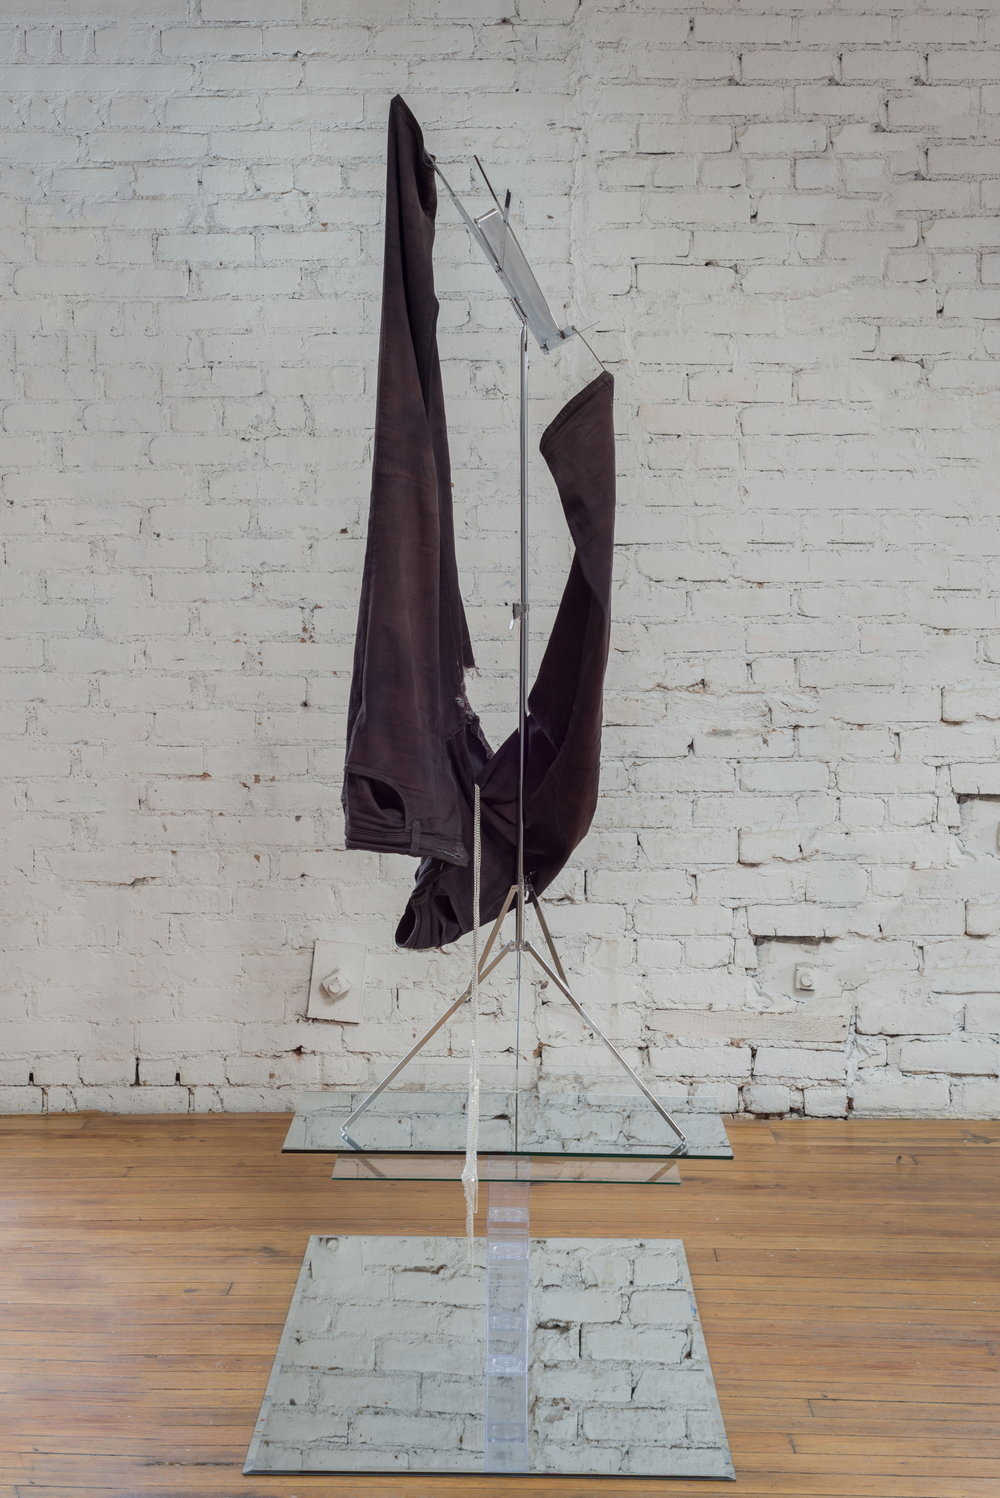 Kayode Ojo,  Untitled , 2017, Uniqlo Men's Leggings Jeans Gray, Rit Liquid Fabric Dye Black, Hamilton Stands KB400 Classic American Folding Sheet Music Stand (Chrome), Jane Stone Hot Sexy Simple Unibody Bilayer Silver Color Tassels Body Chain Necklace Fashion Statement Jewelry New Body Necklace (Fn1095-Silver), Clear Amac Boxes, mirror, glass, Dimensions variable.